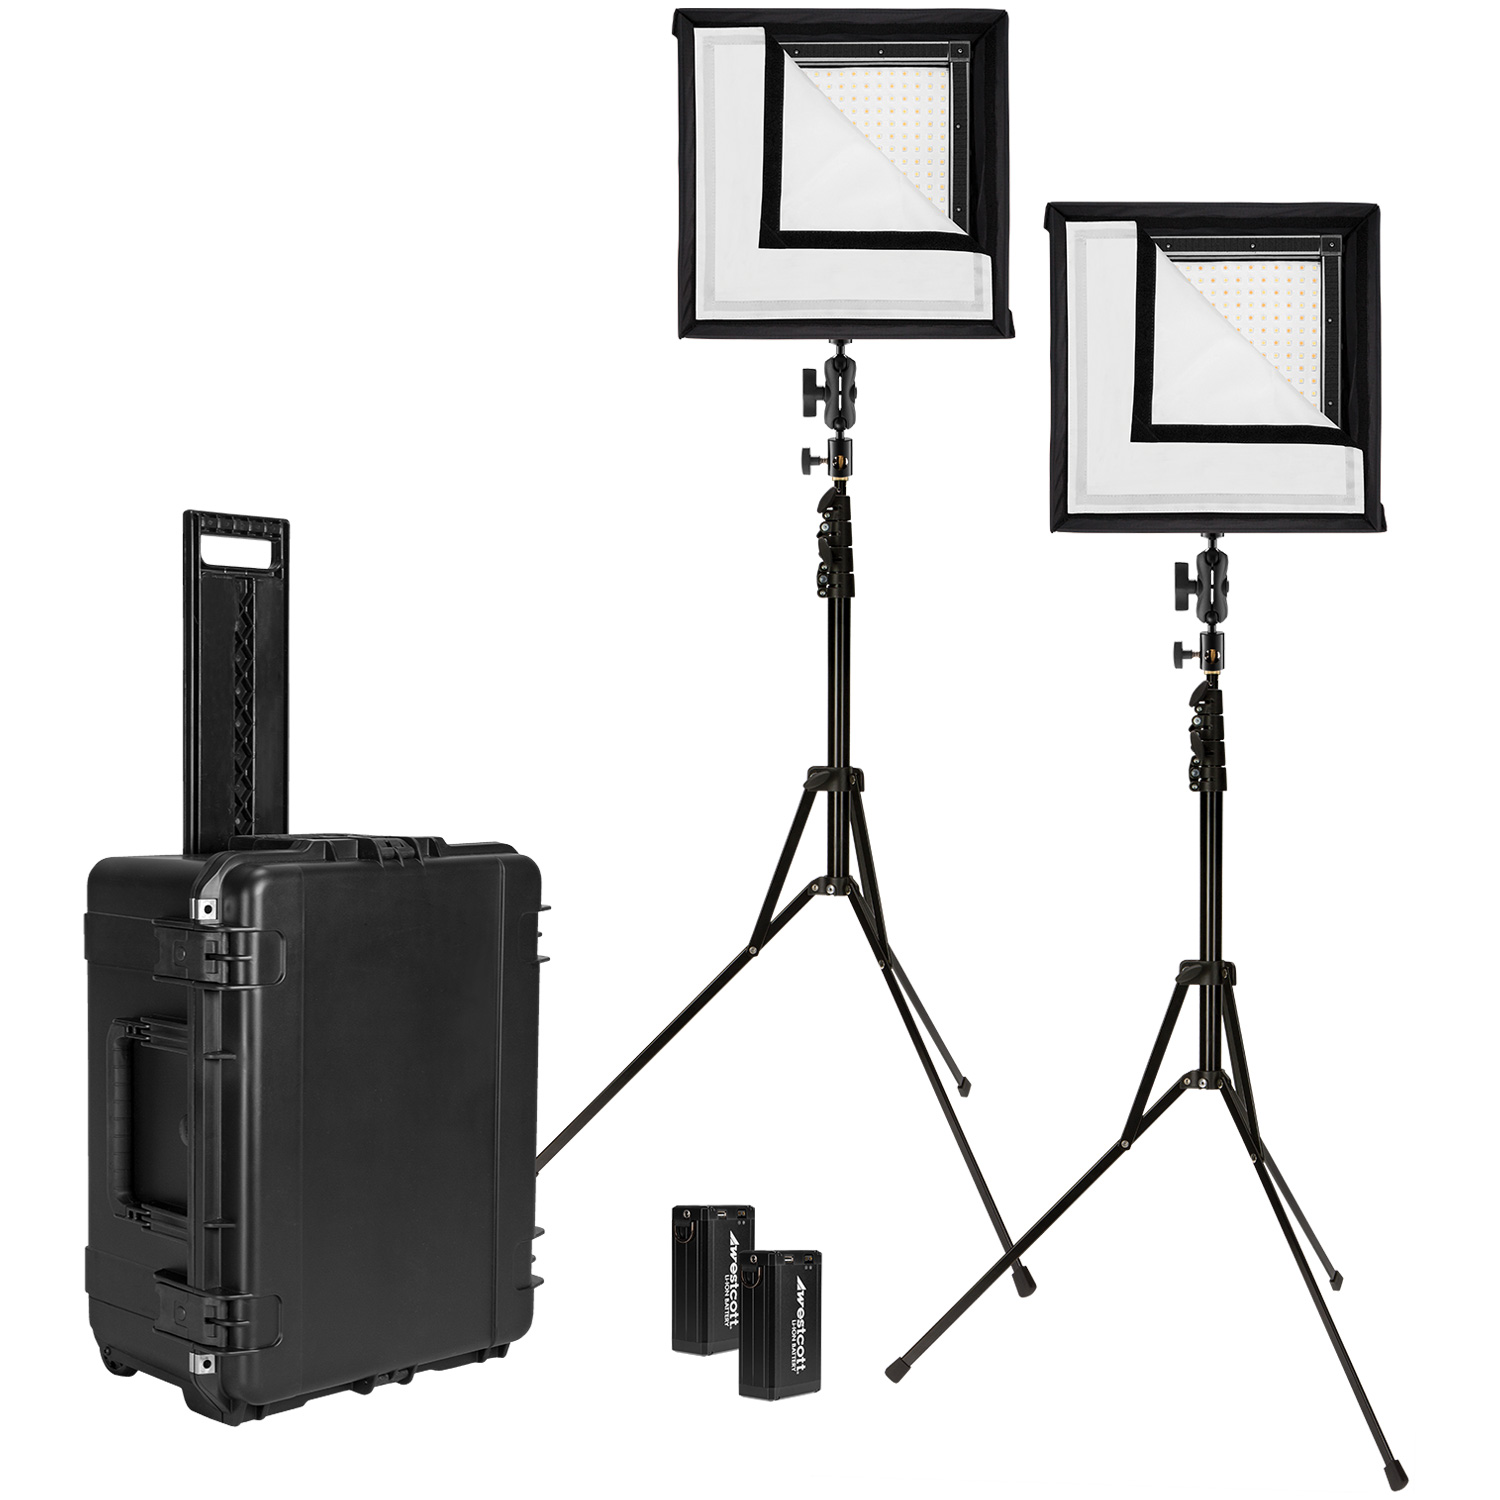 Flex Bi-Color LED 2-Light Cine Travel Kit (1' x 1', US/CA Plug)